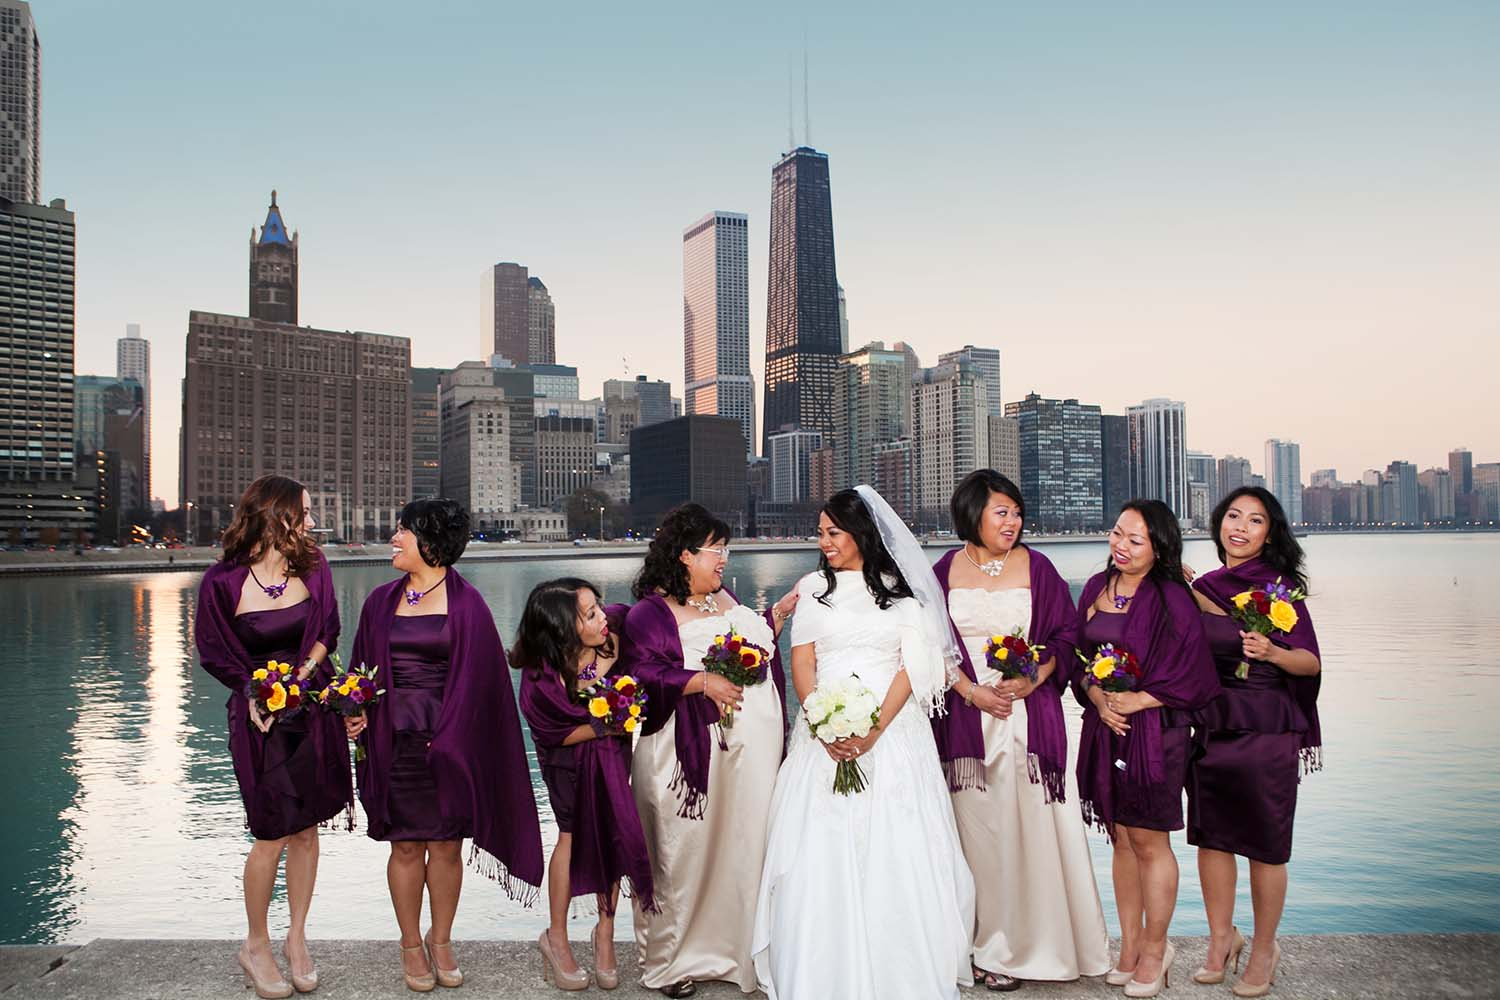 Bride, bridesmaids, photo, portrait, downtown, Chicago, skyline, Lake Michigan, Navy Pier Park, evening, beautiful, sunset, candid